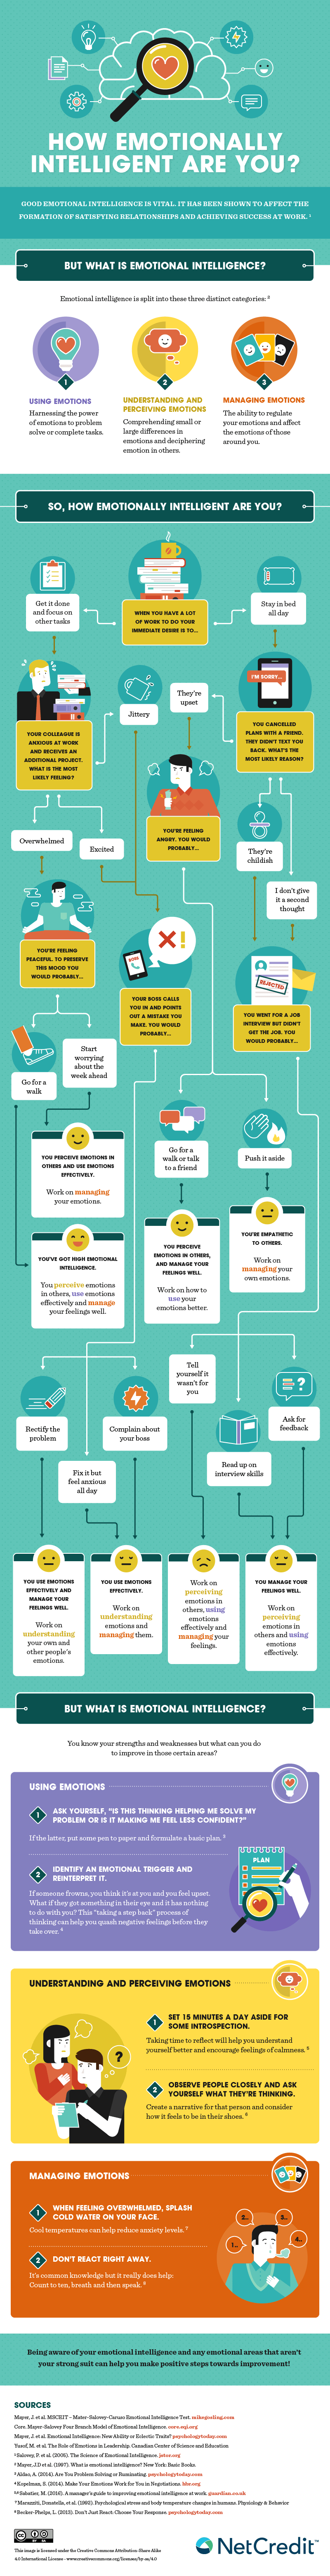 How Emotionally Intelligent Are You? Infographic